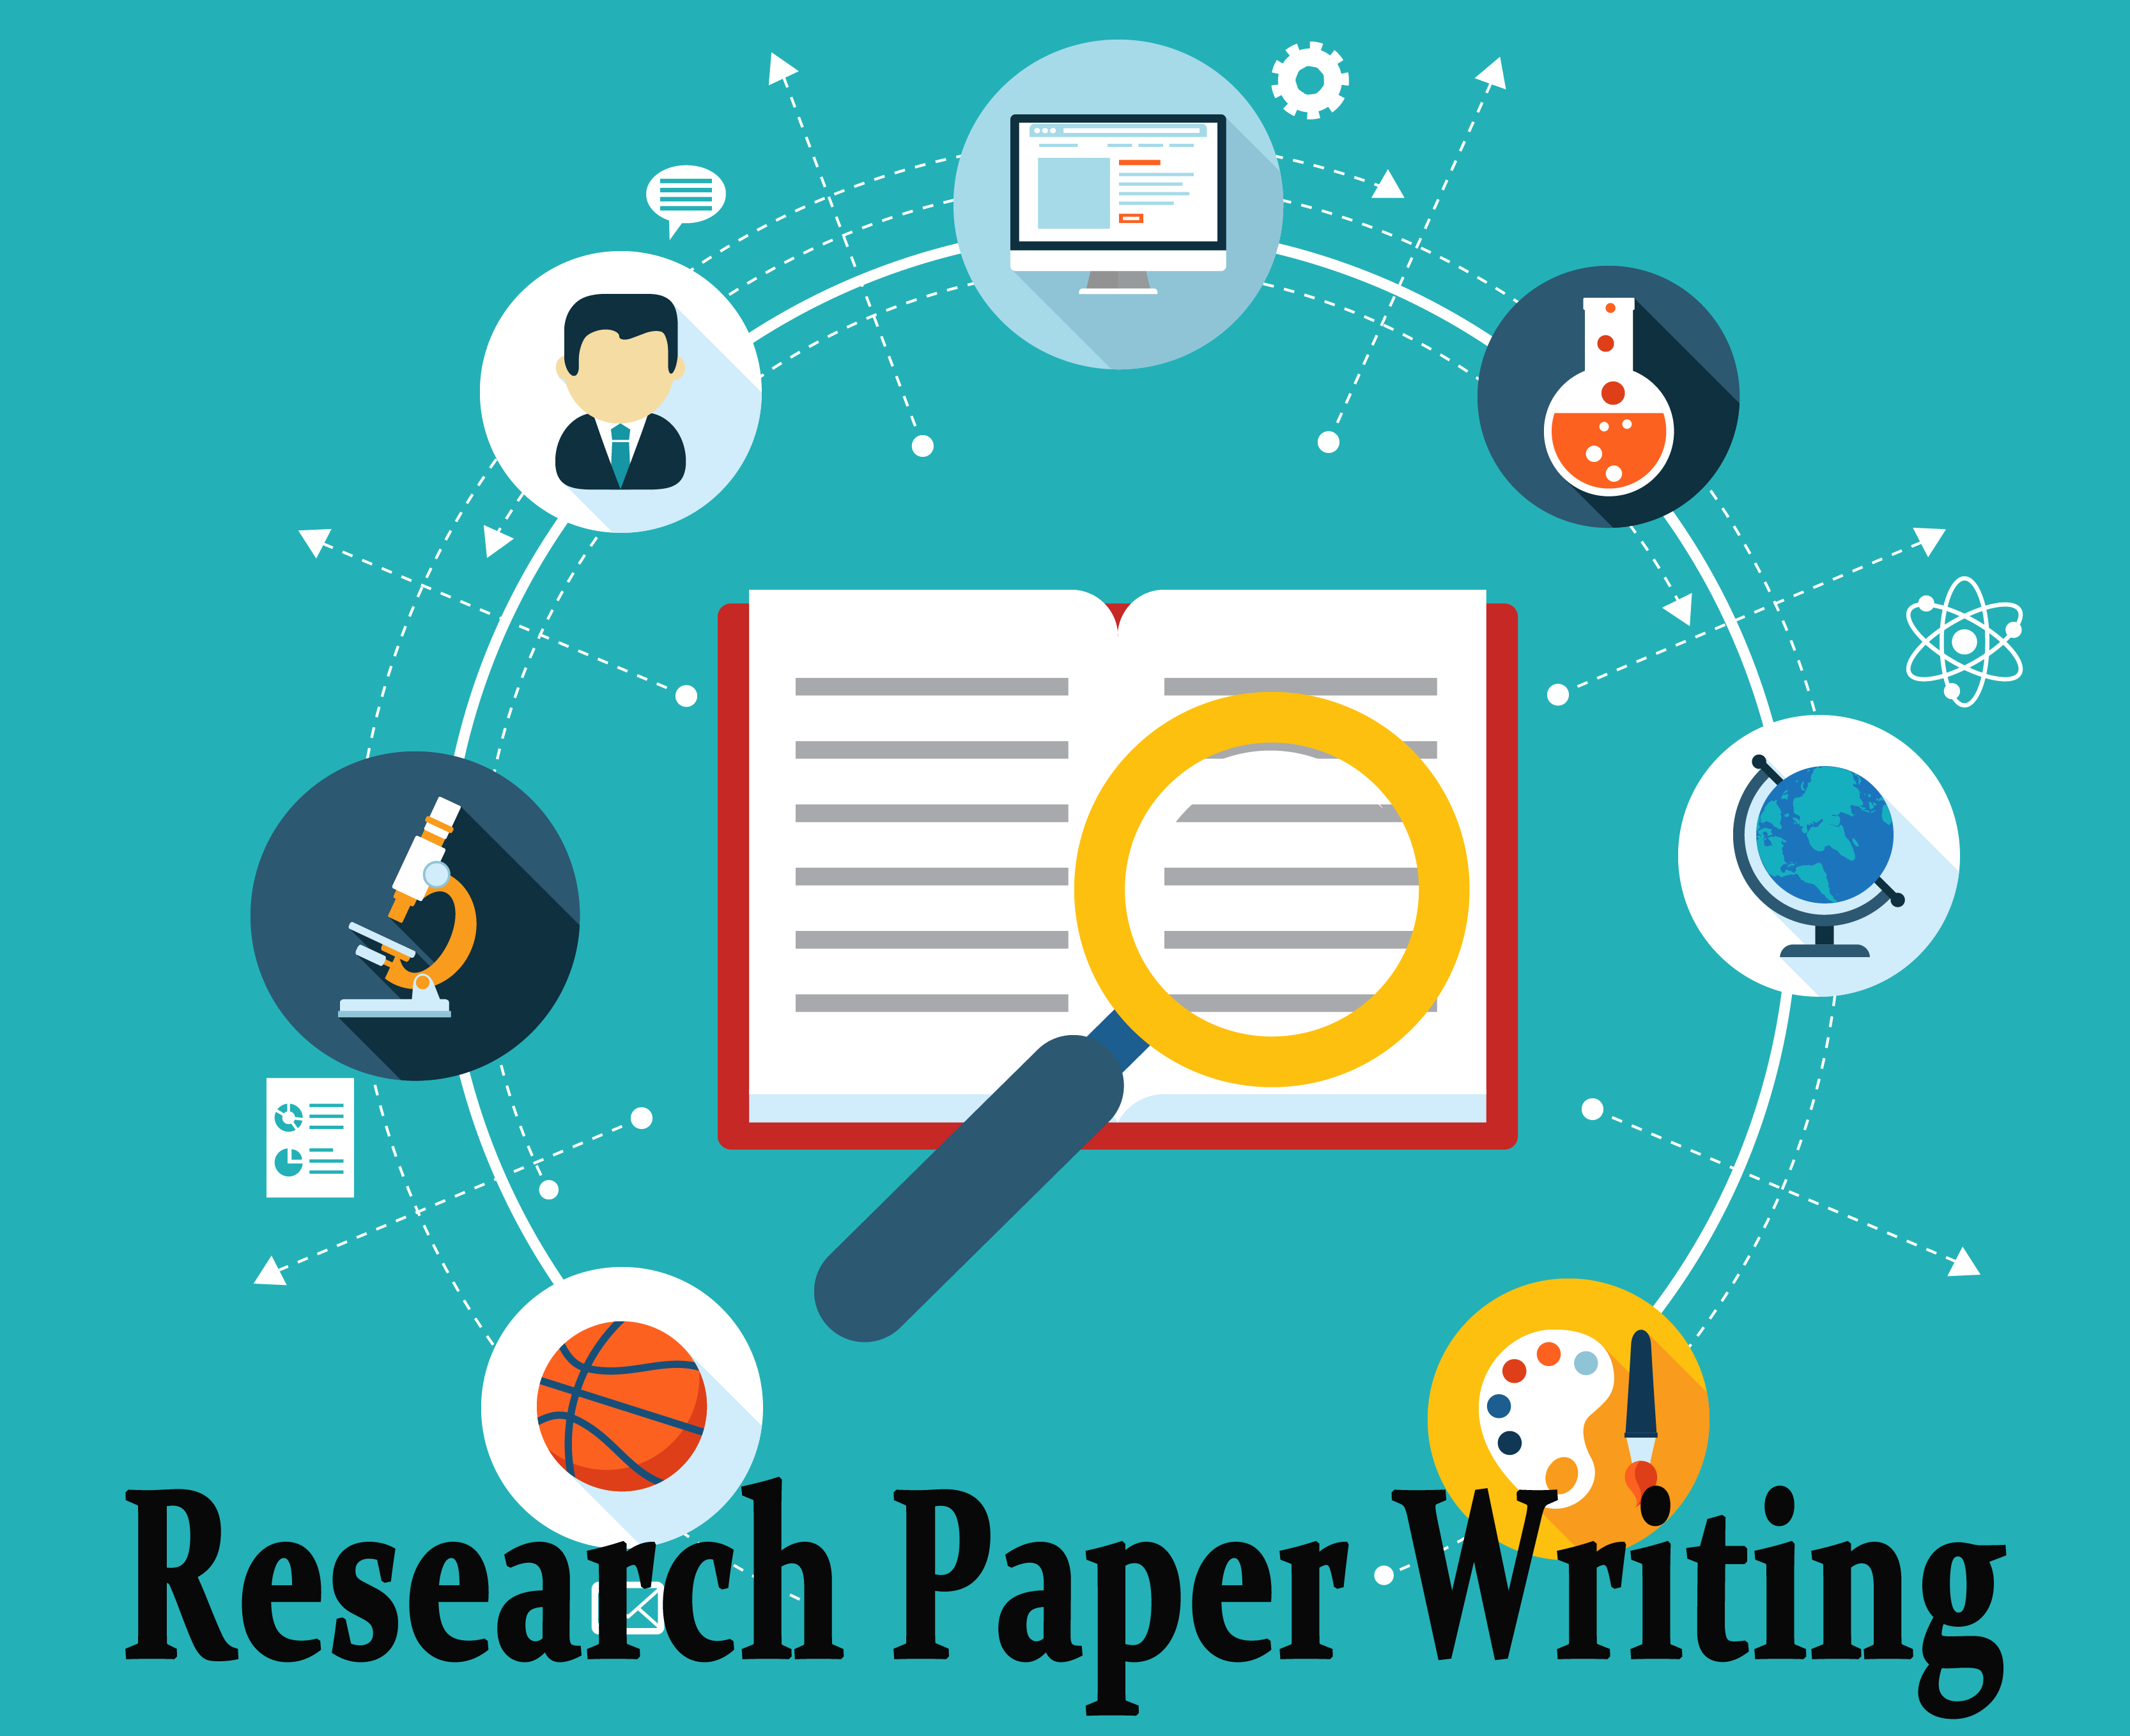 001 503 Effective Research Paper Writing Help With Fantastic Papers Assistance A Full